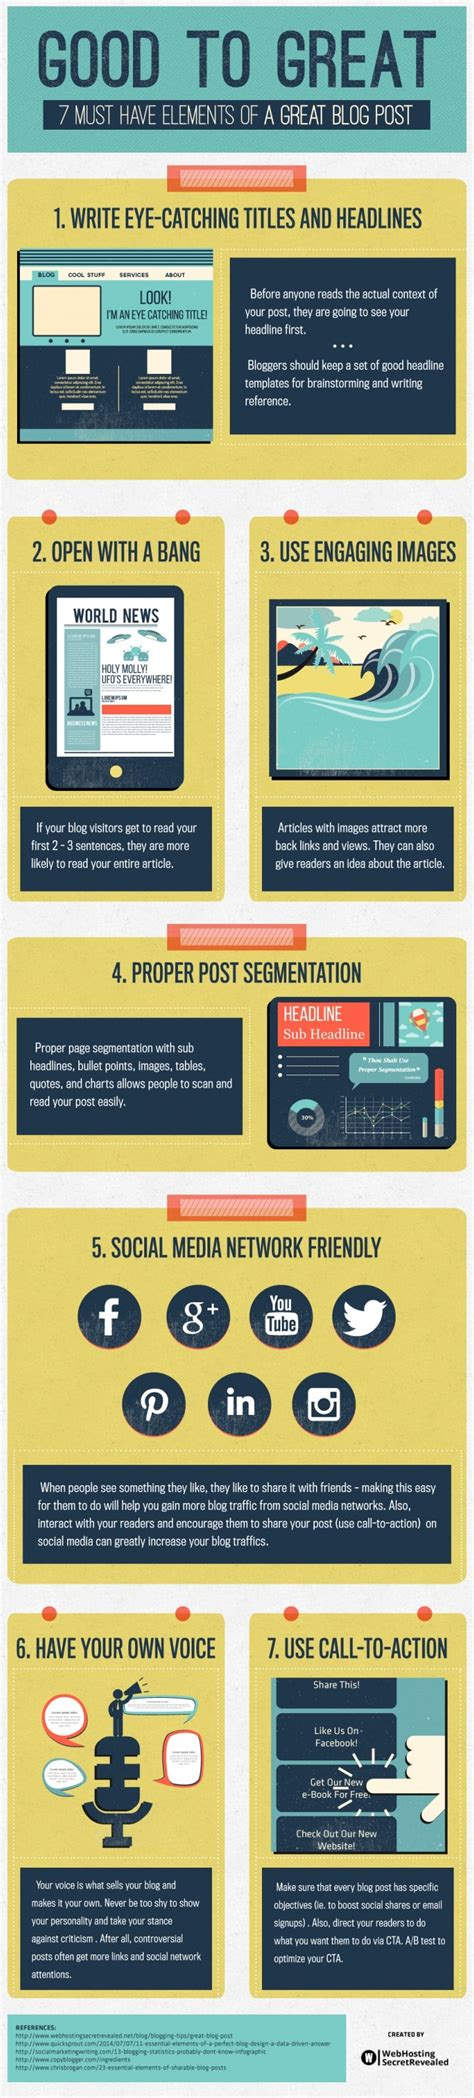 7 Great Blogs by 7 Must Elements Of A Great Post Infographic